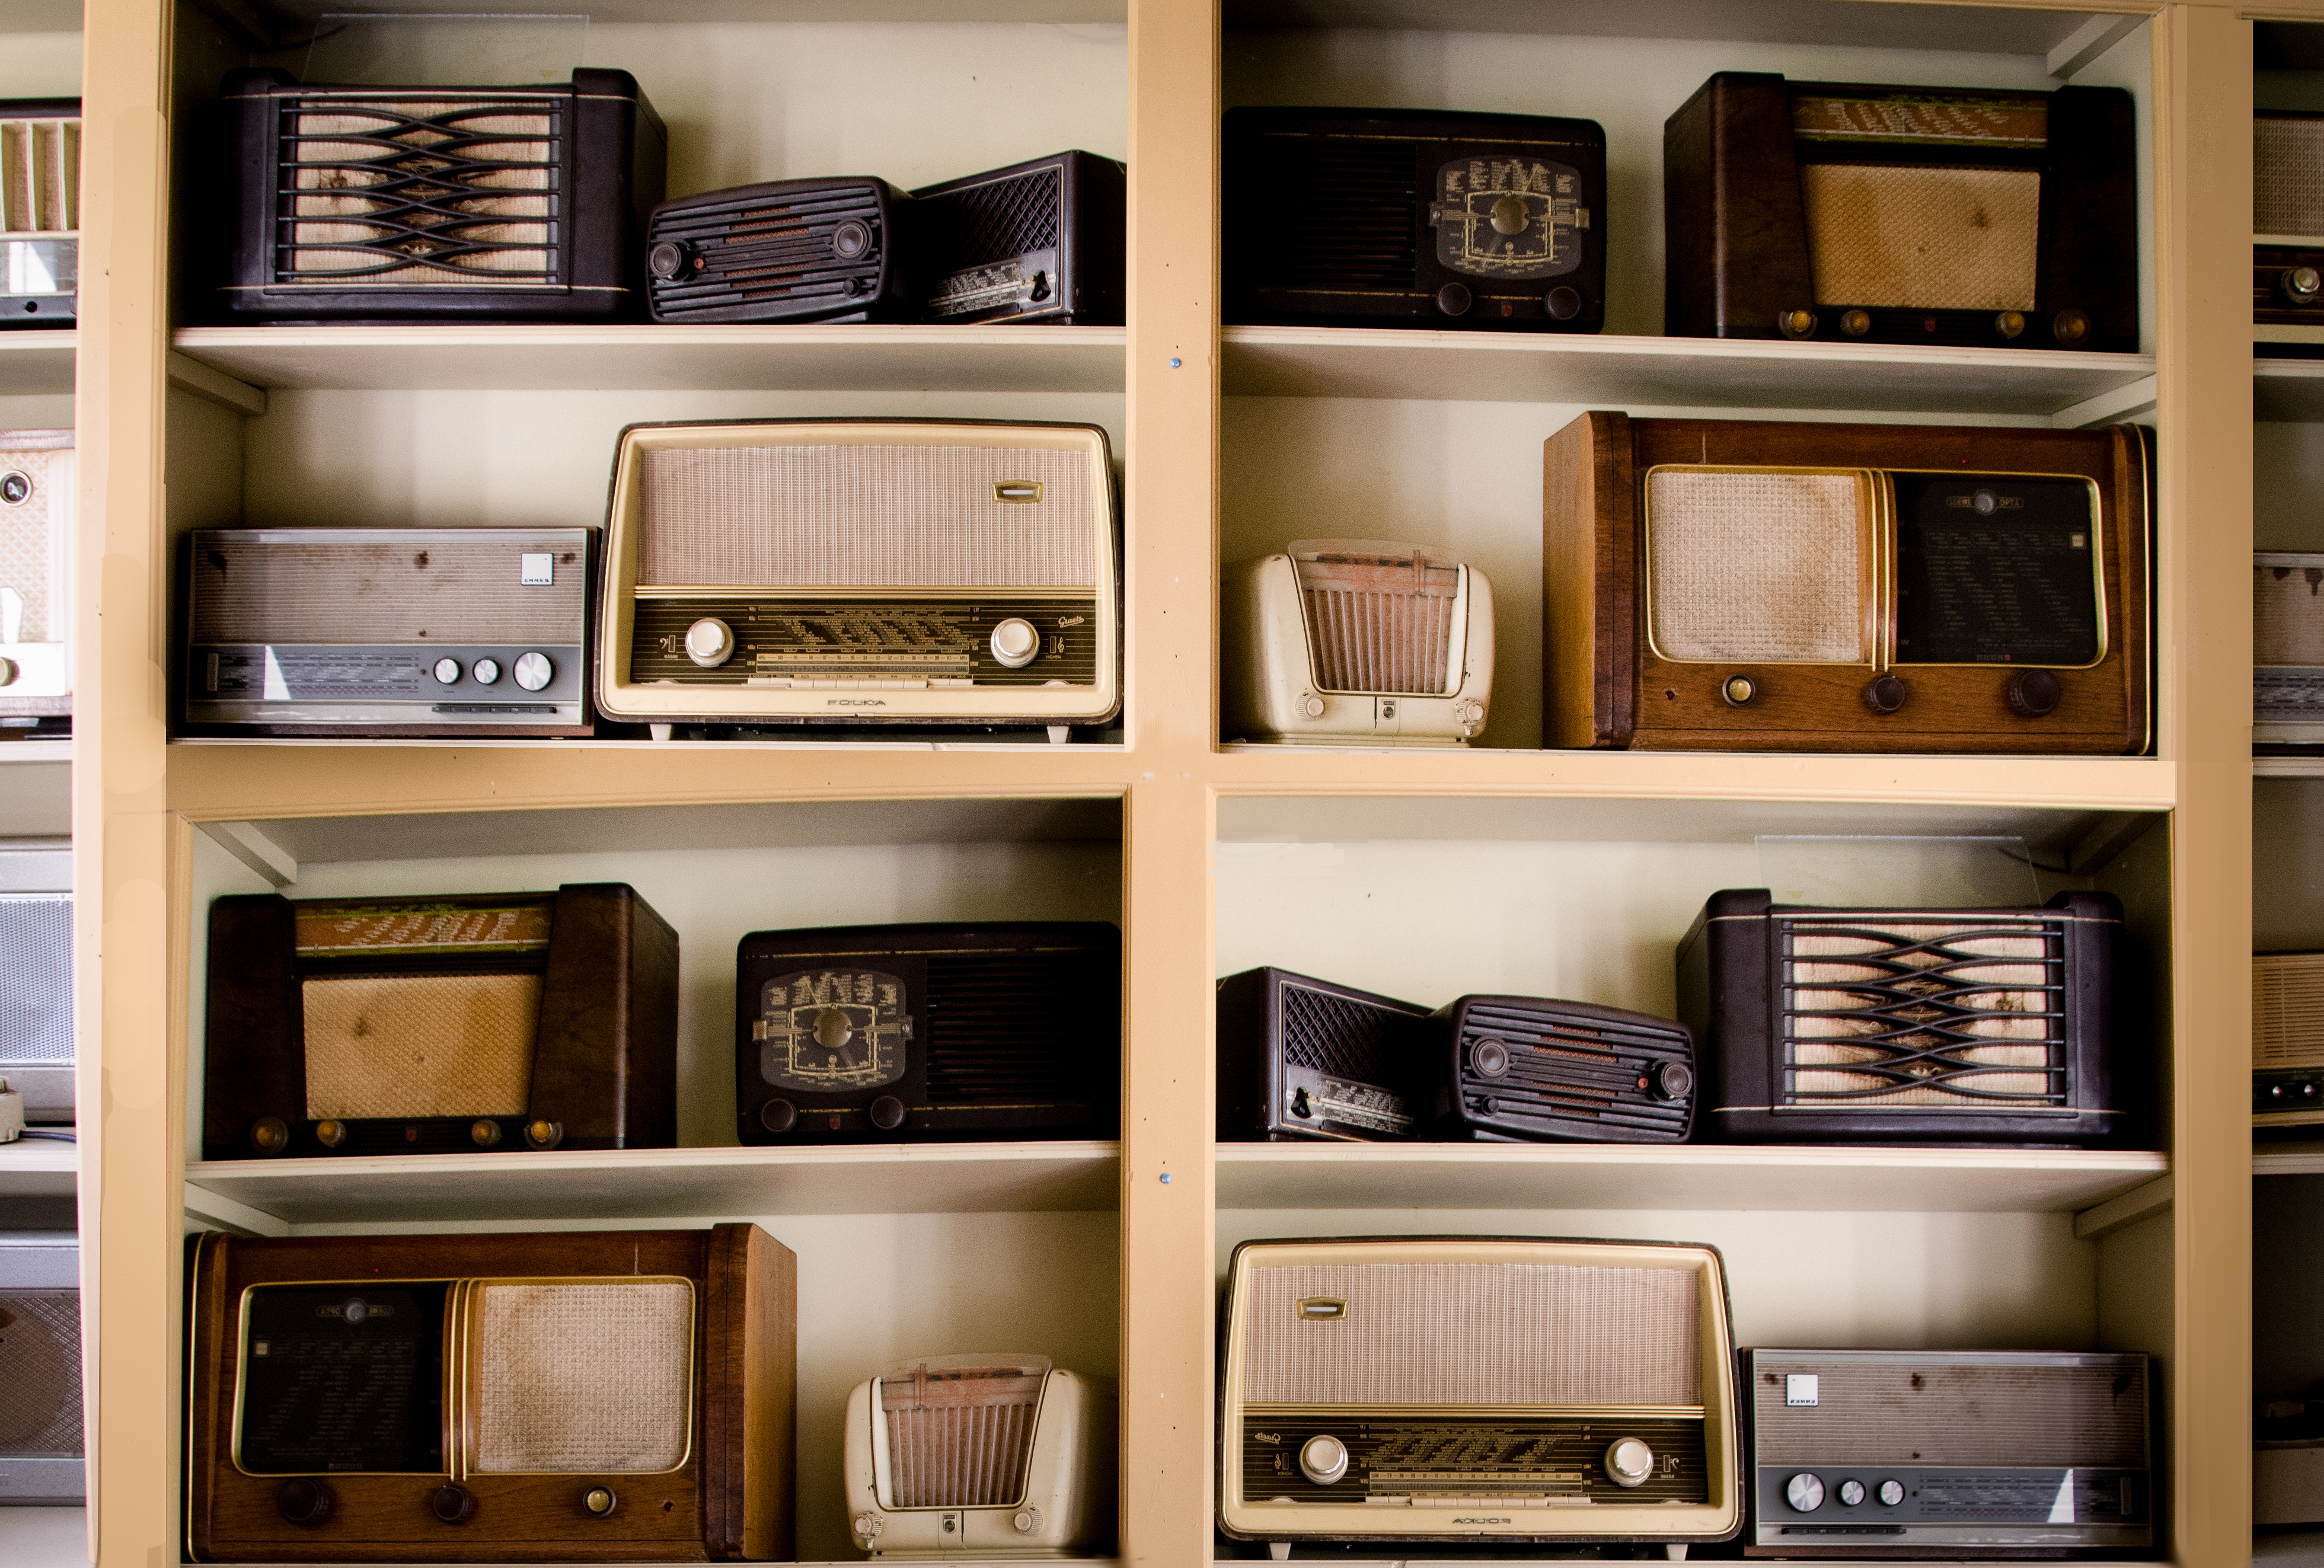 A photo of a shelving set with lots of old fashioned radios